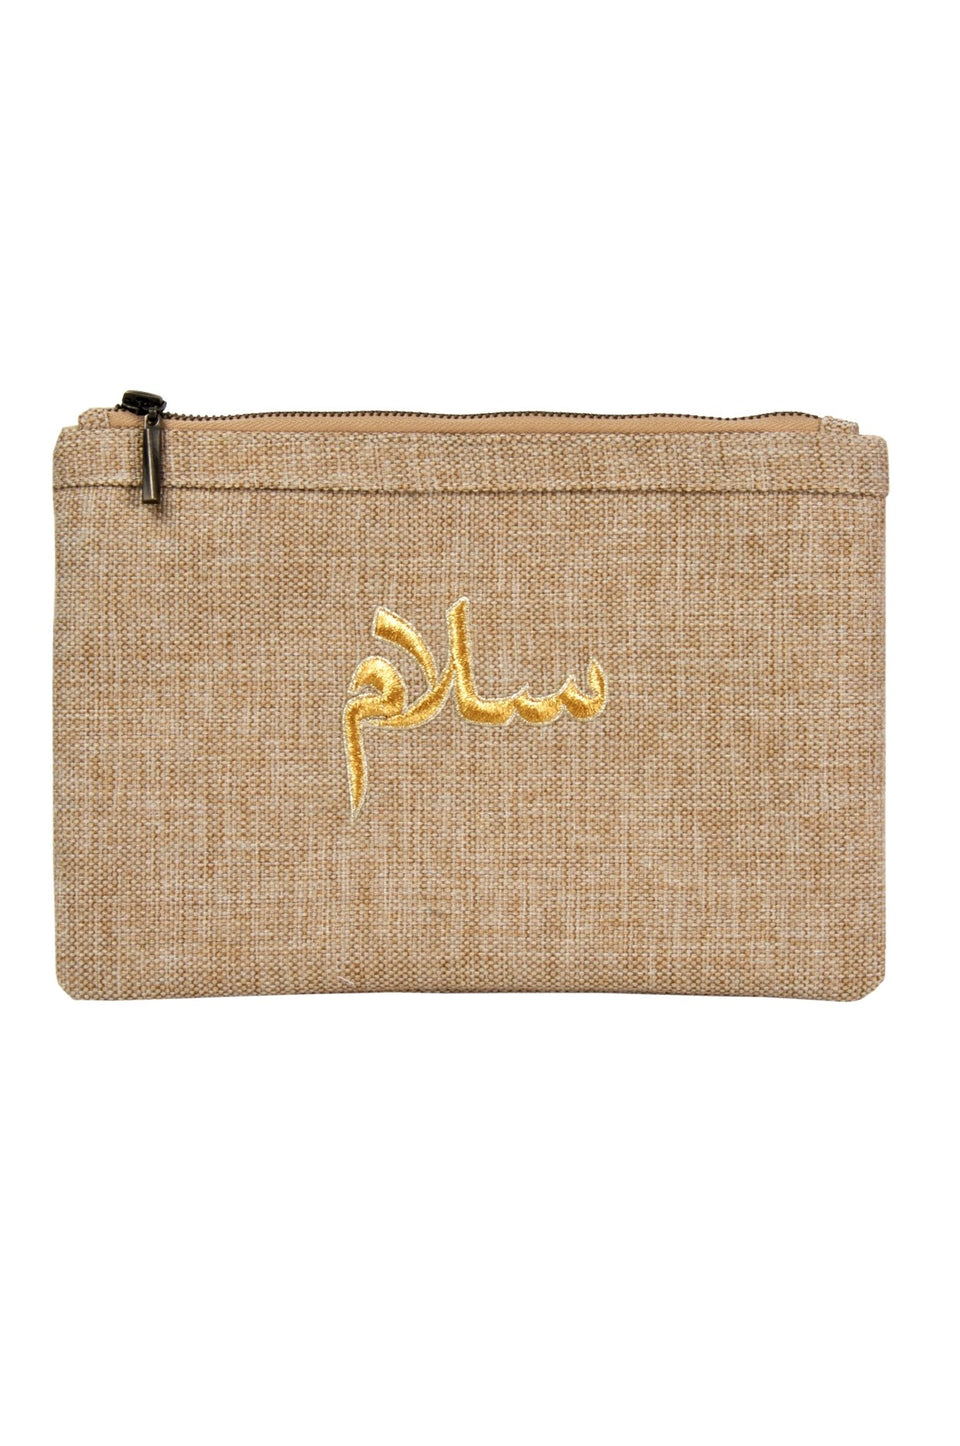 POUCH SALAM - MINE BAGS AND ACCESSORIES - MIRA Y MANO